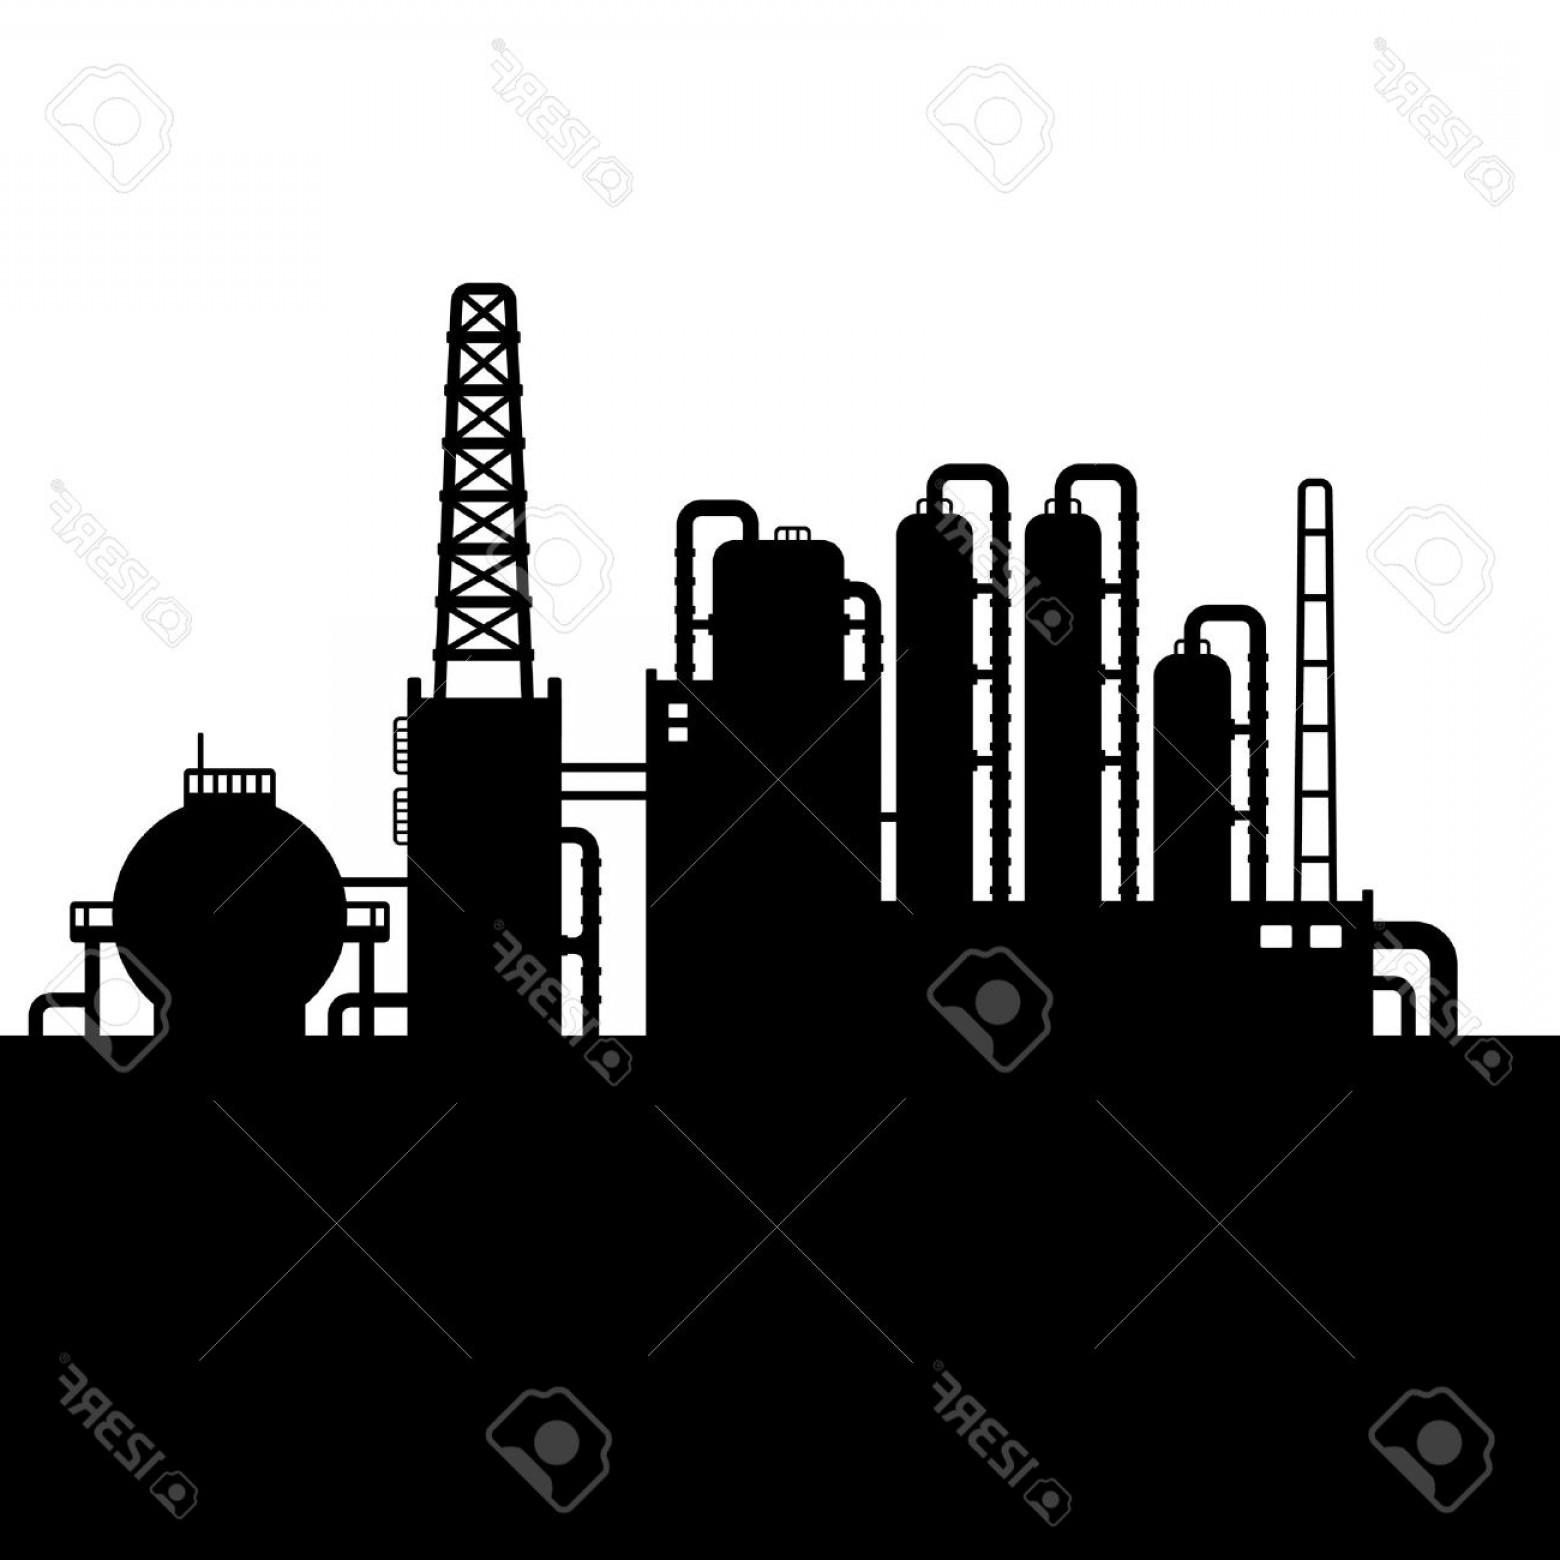 Factory Vector Skyline: Photostock Vector Oil Refinery Plant And Chemical Factory Silhouette Vector Illustration